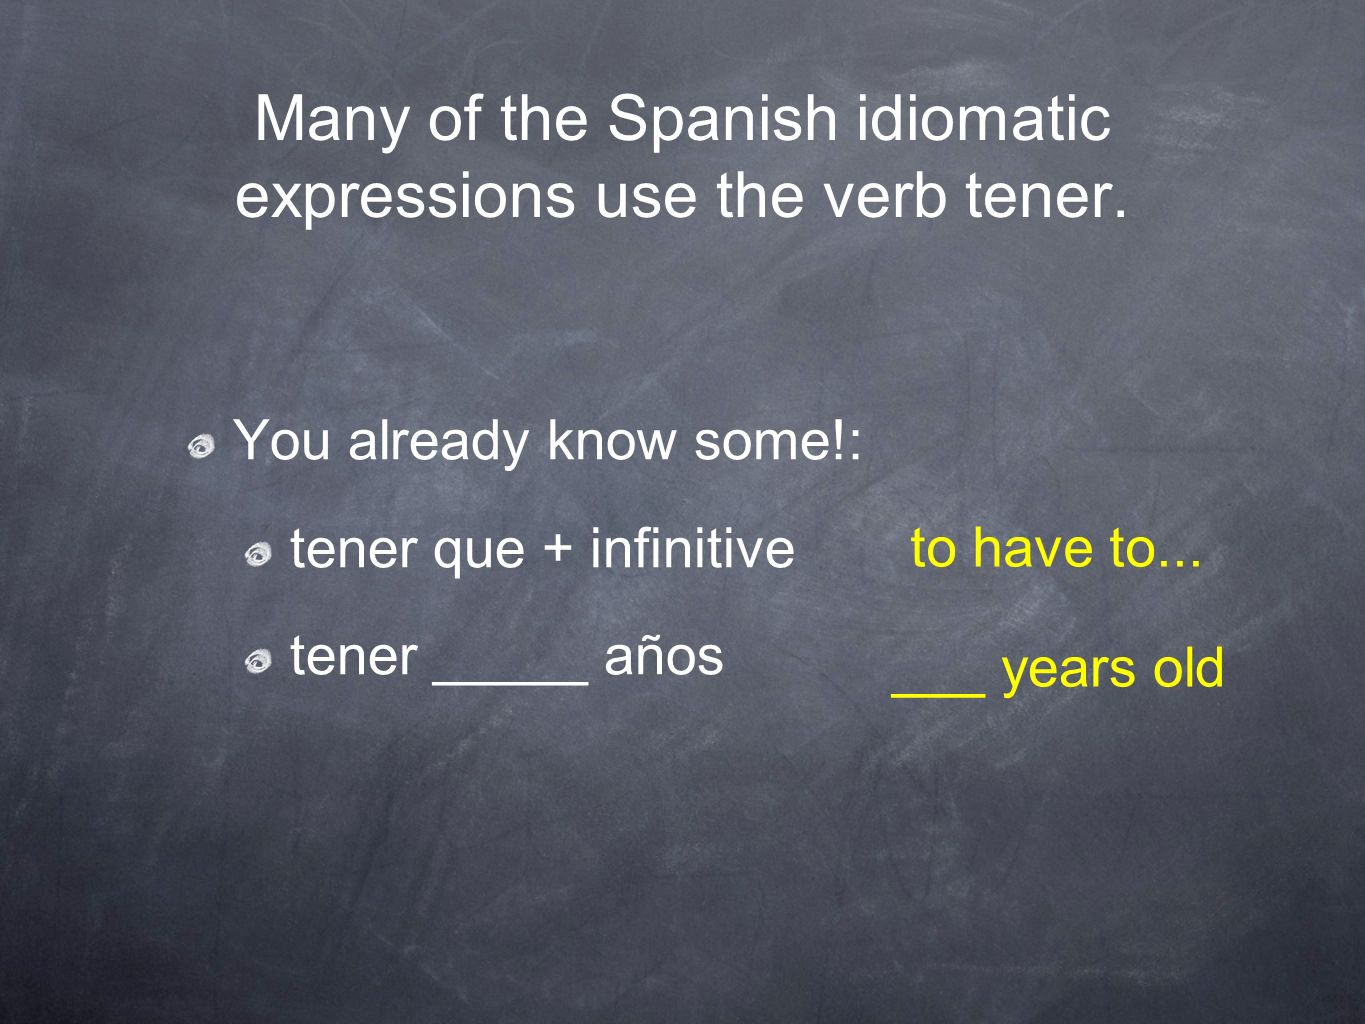 Many of the Spanish idiomatic expressions use the verb tener. You already know some!: tener que + infinitive tener _____ años to have to... ___ years